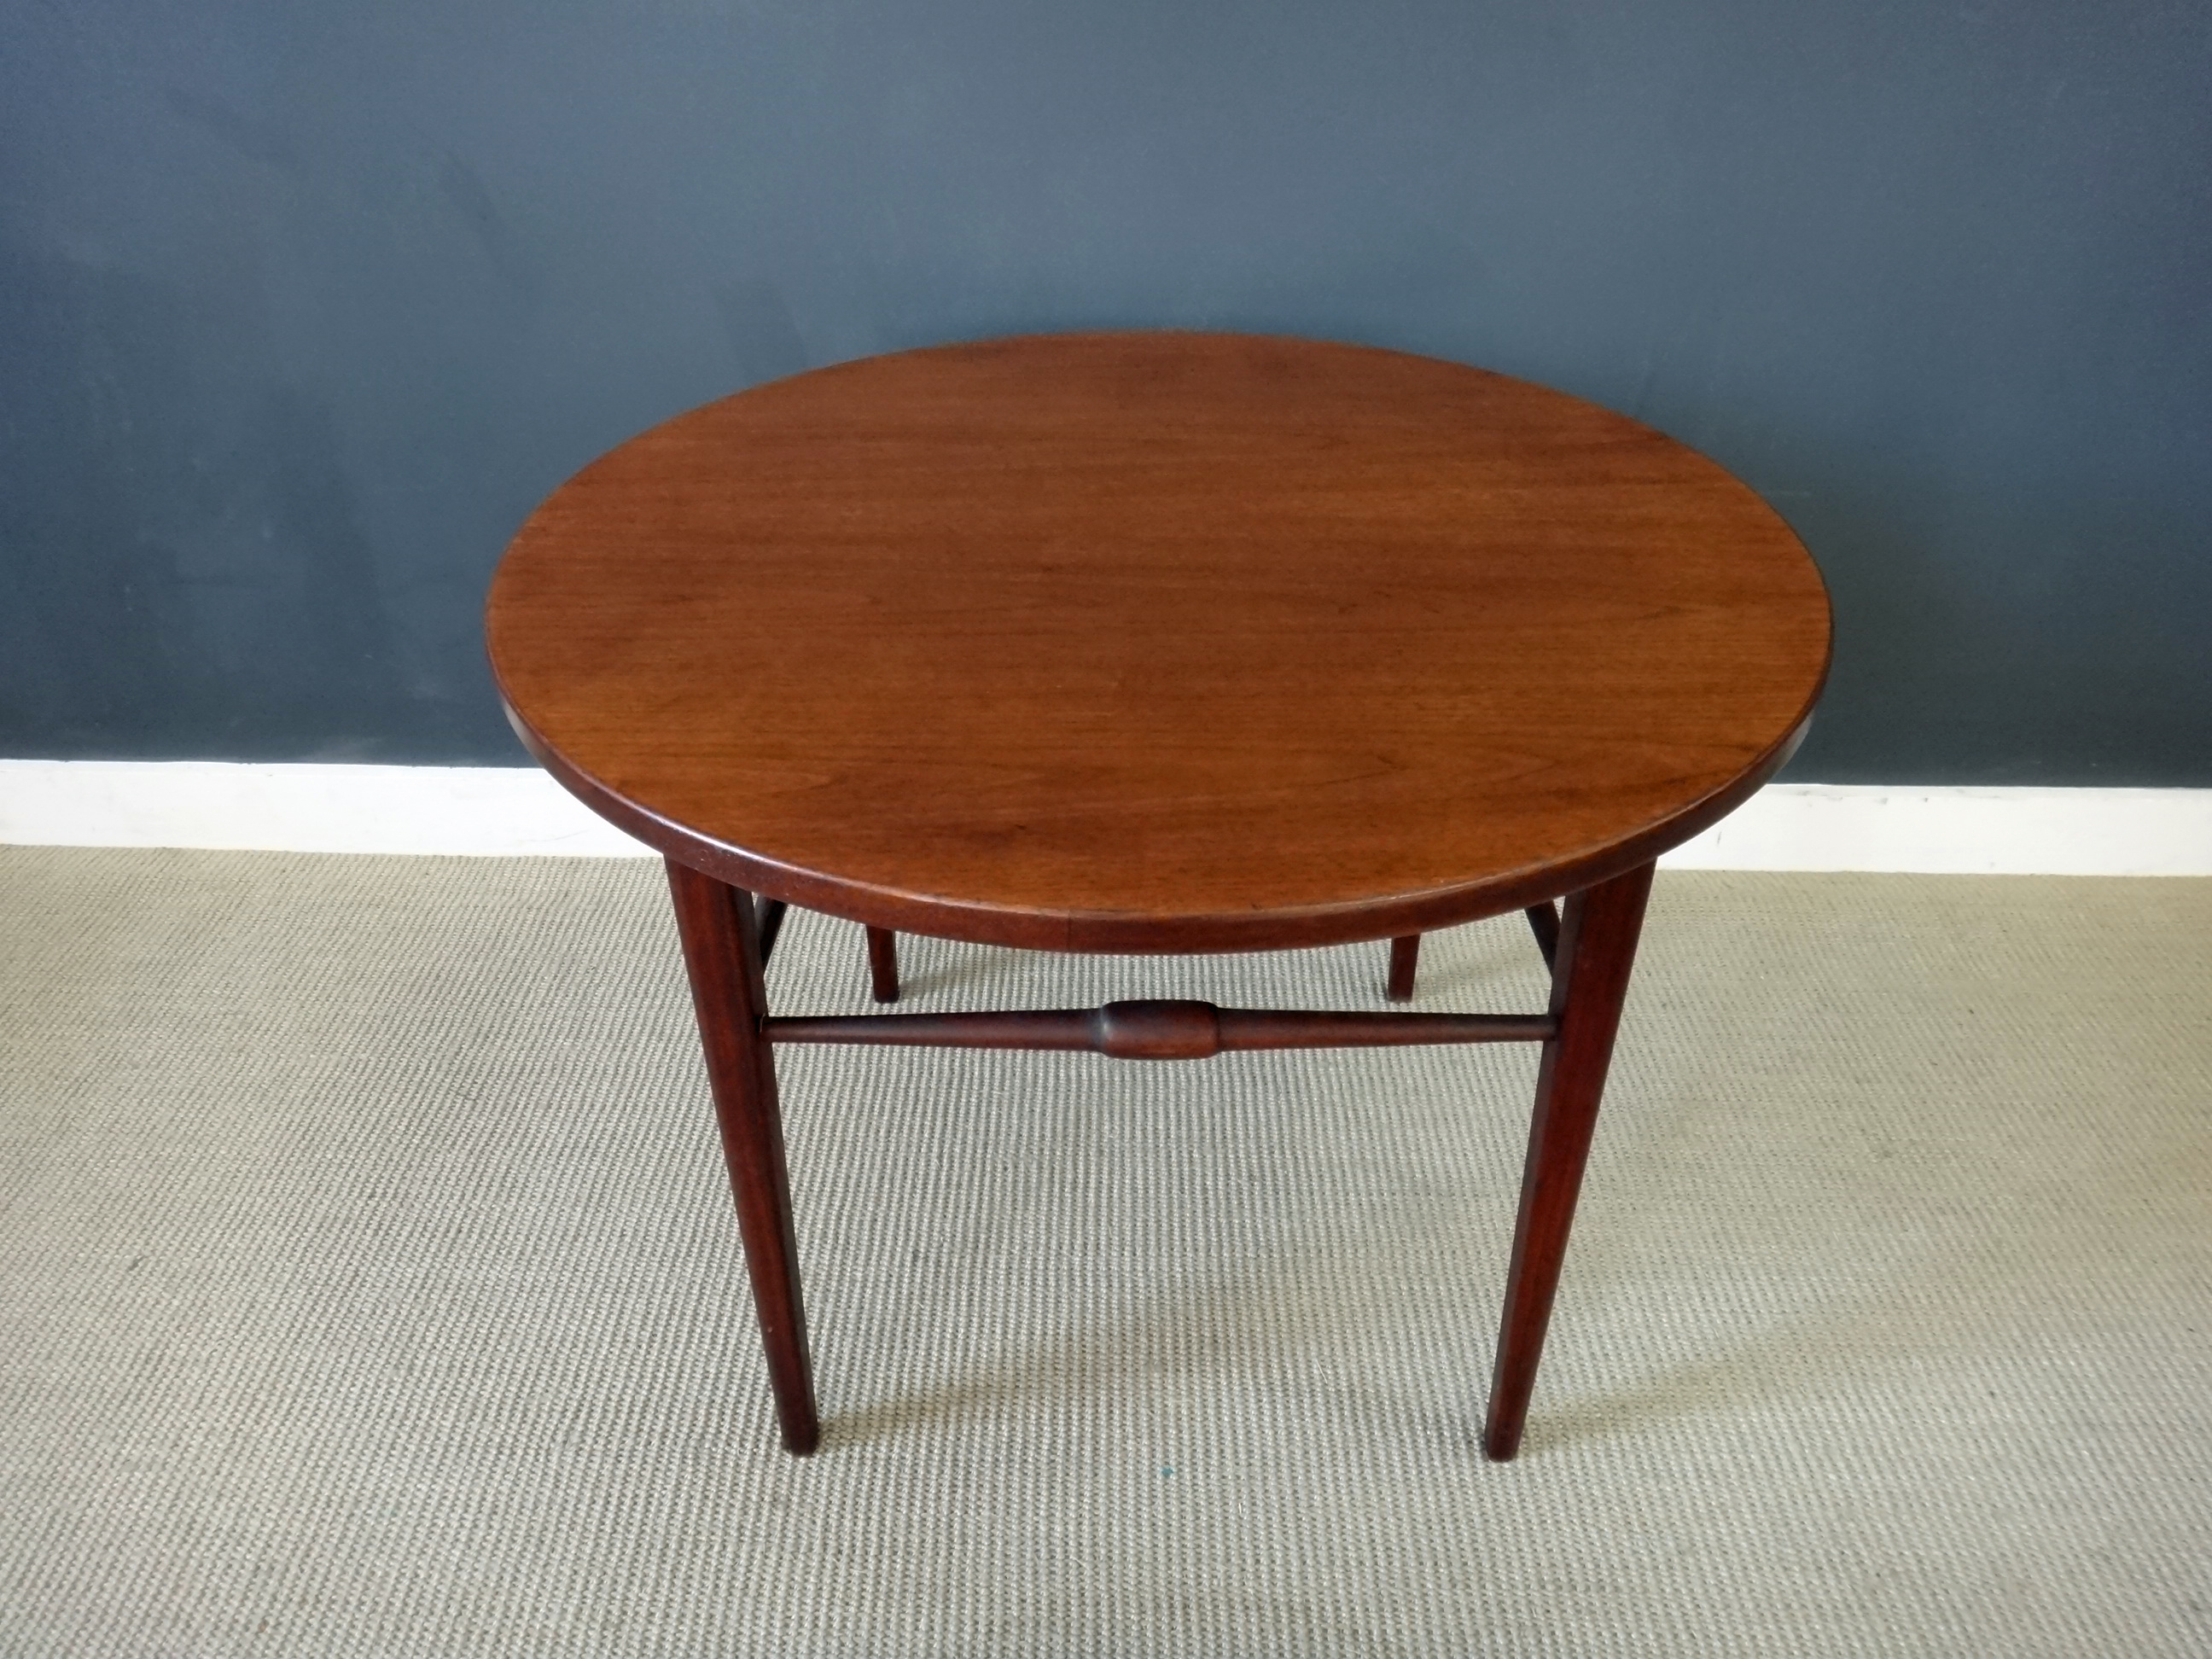 On Sale - Danish Modern Round Teak Side Table